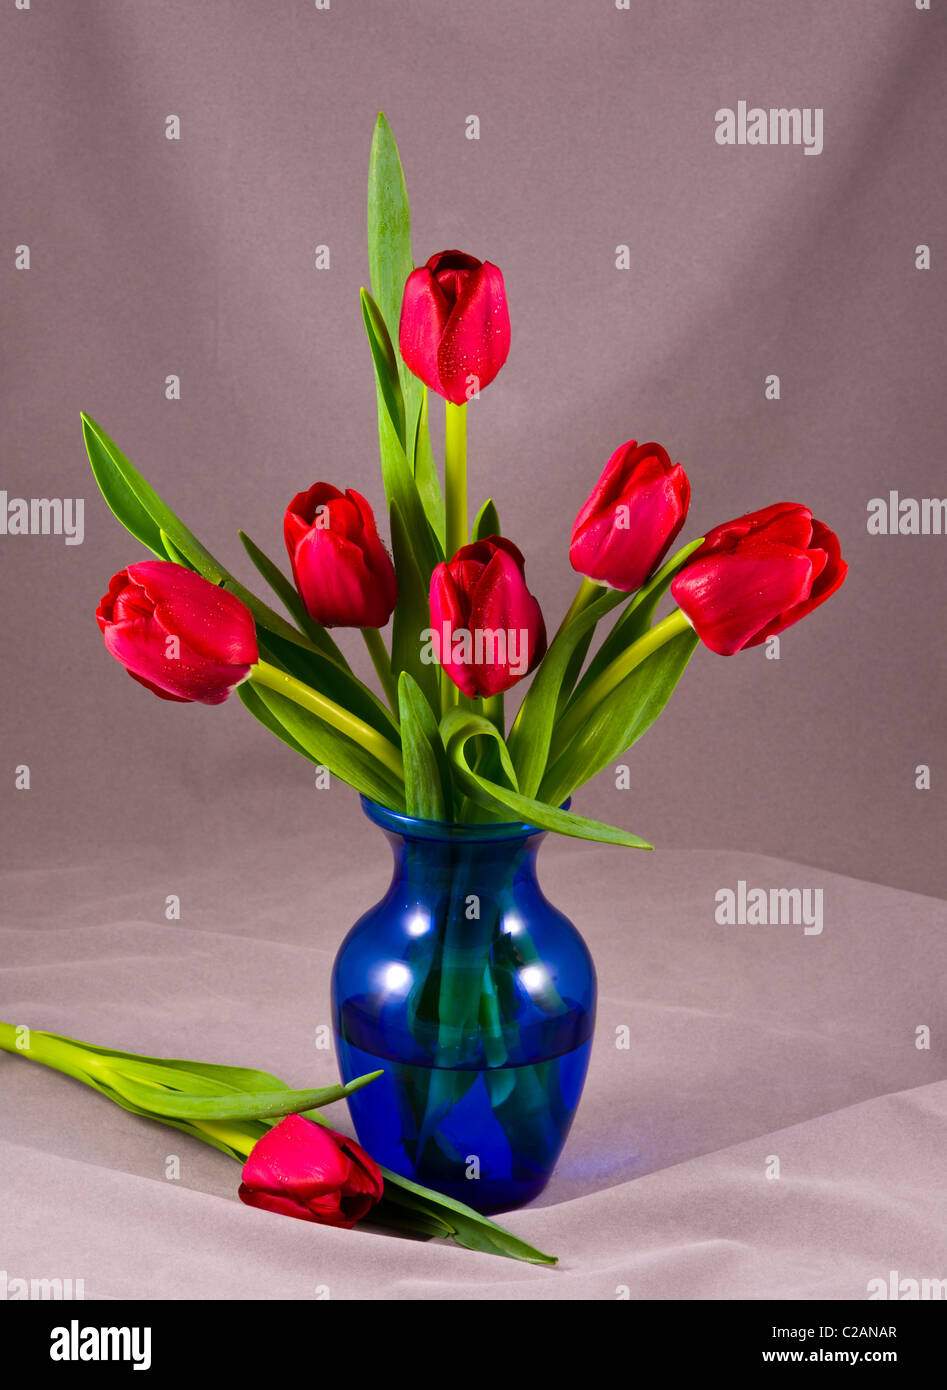 red tulips in blue vase dew drops mist water flowers composition arrangement still life table top set-up charming - Stock Image